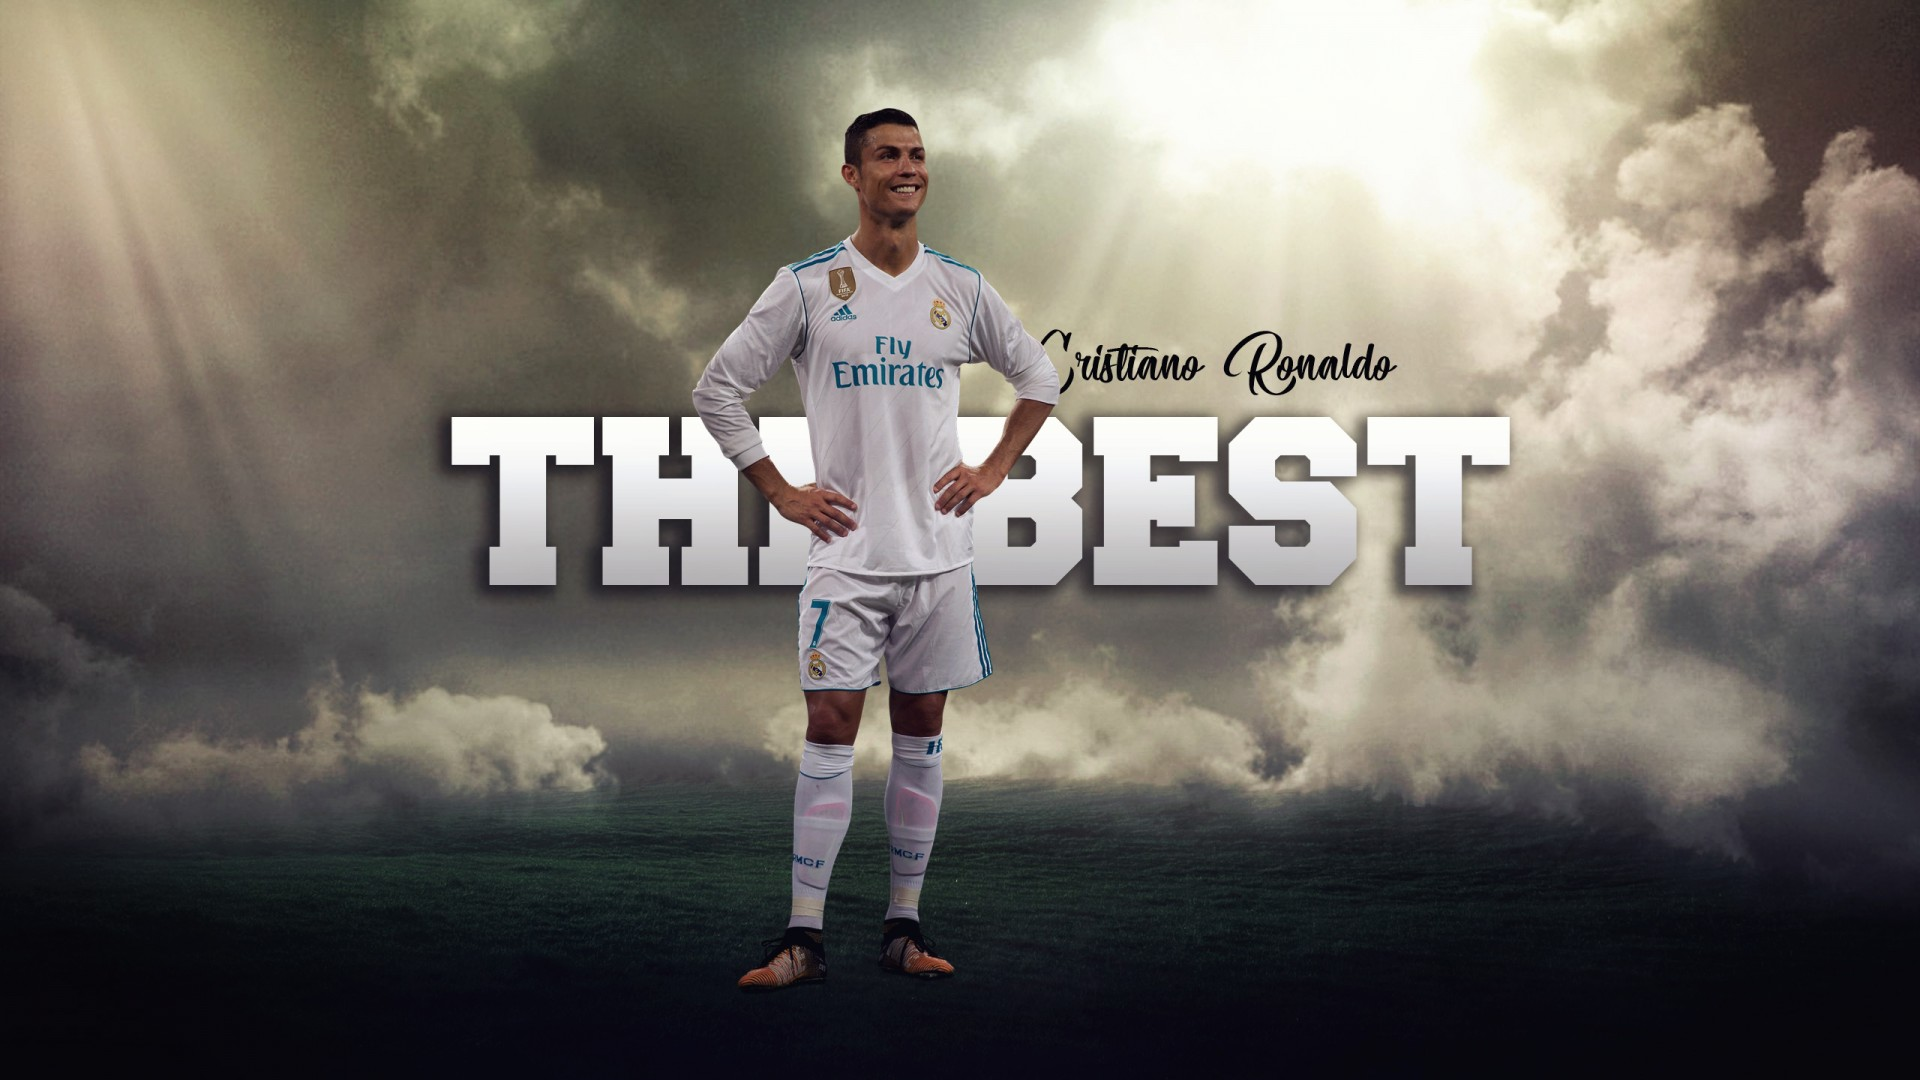 Space Hd Wallpapers 1080p Cristiano Ronaldo The Best Wallpapers Hd Wallpapers Id